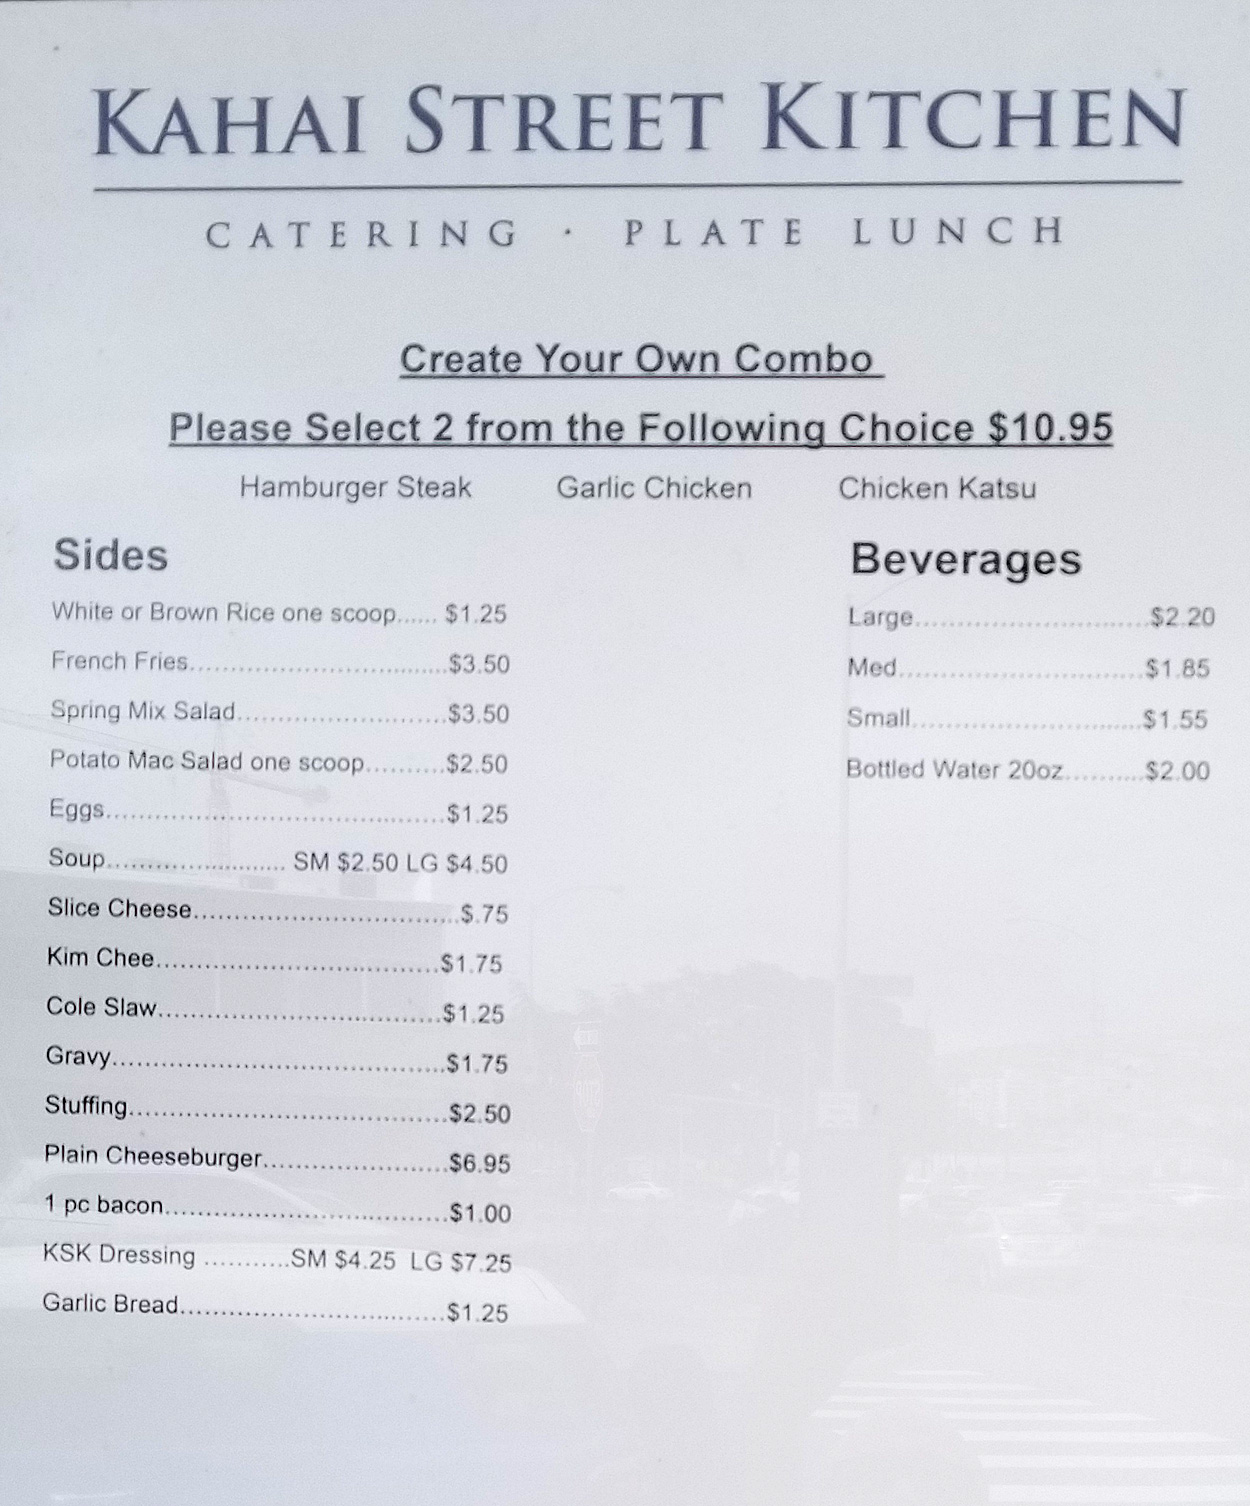 Kahai Street Kitchen moved to Mo\'ili\'ili – Tasty Island